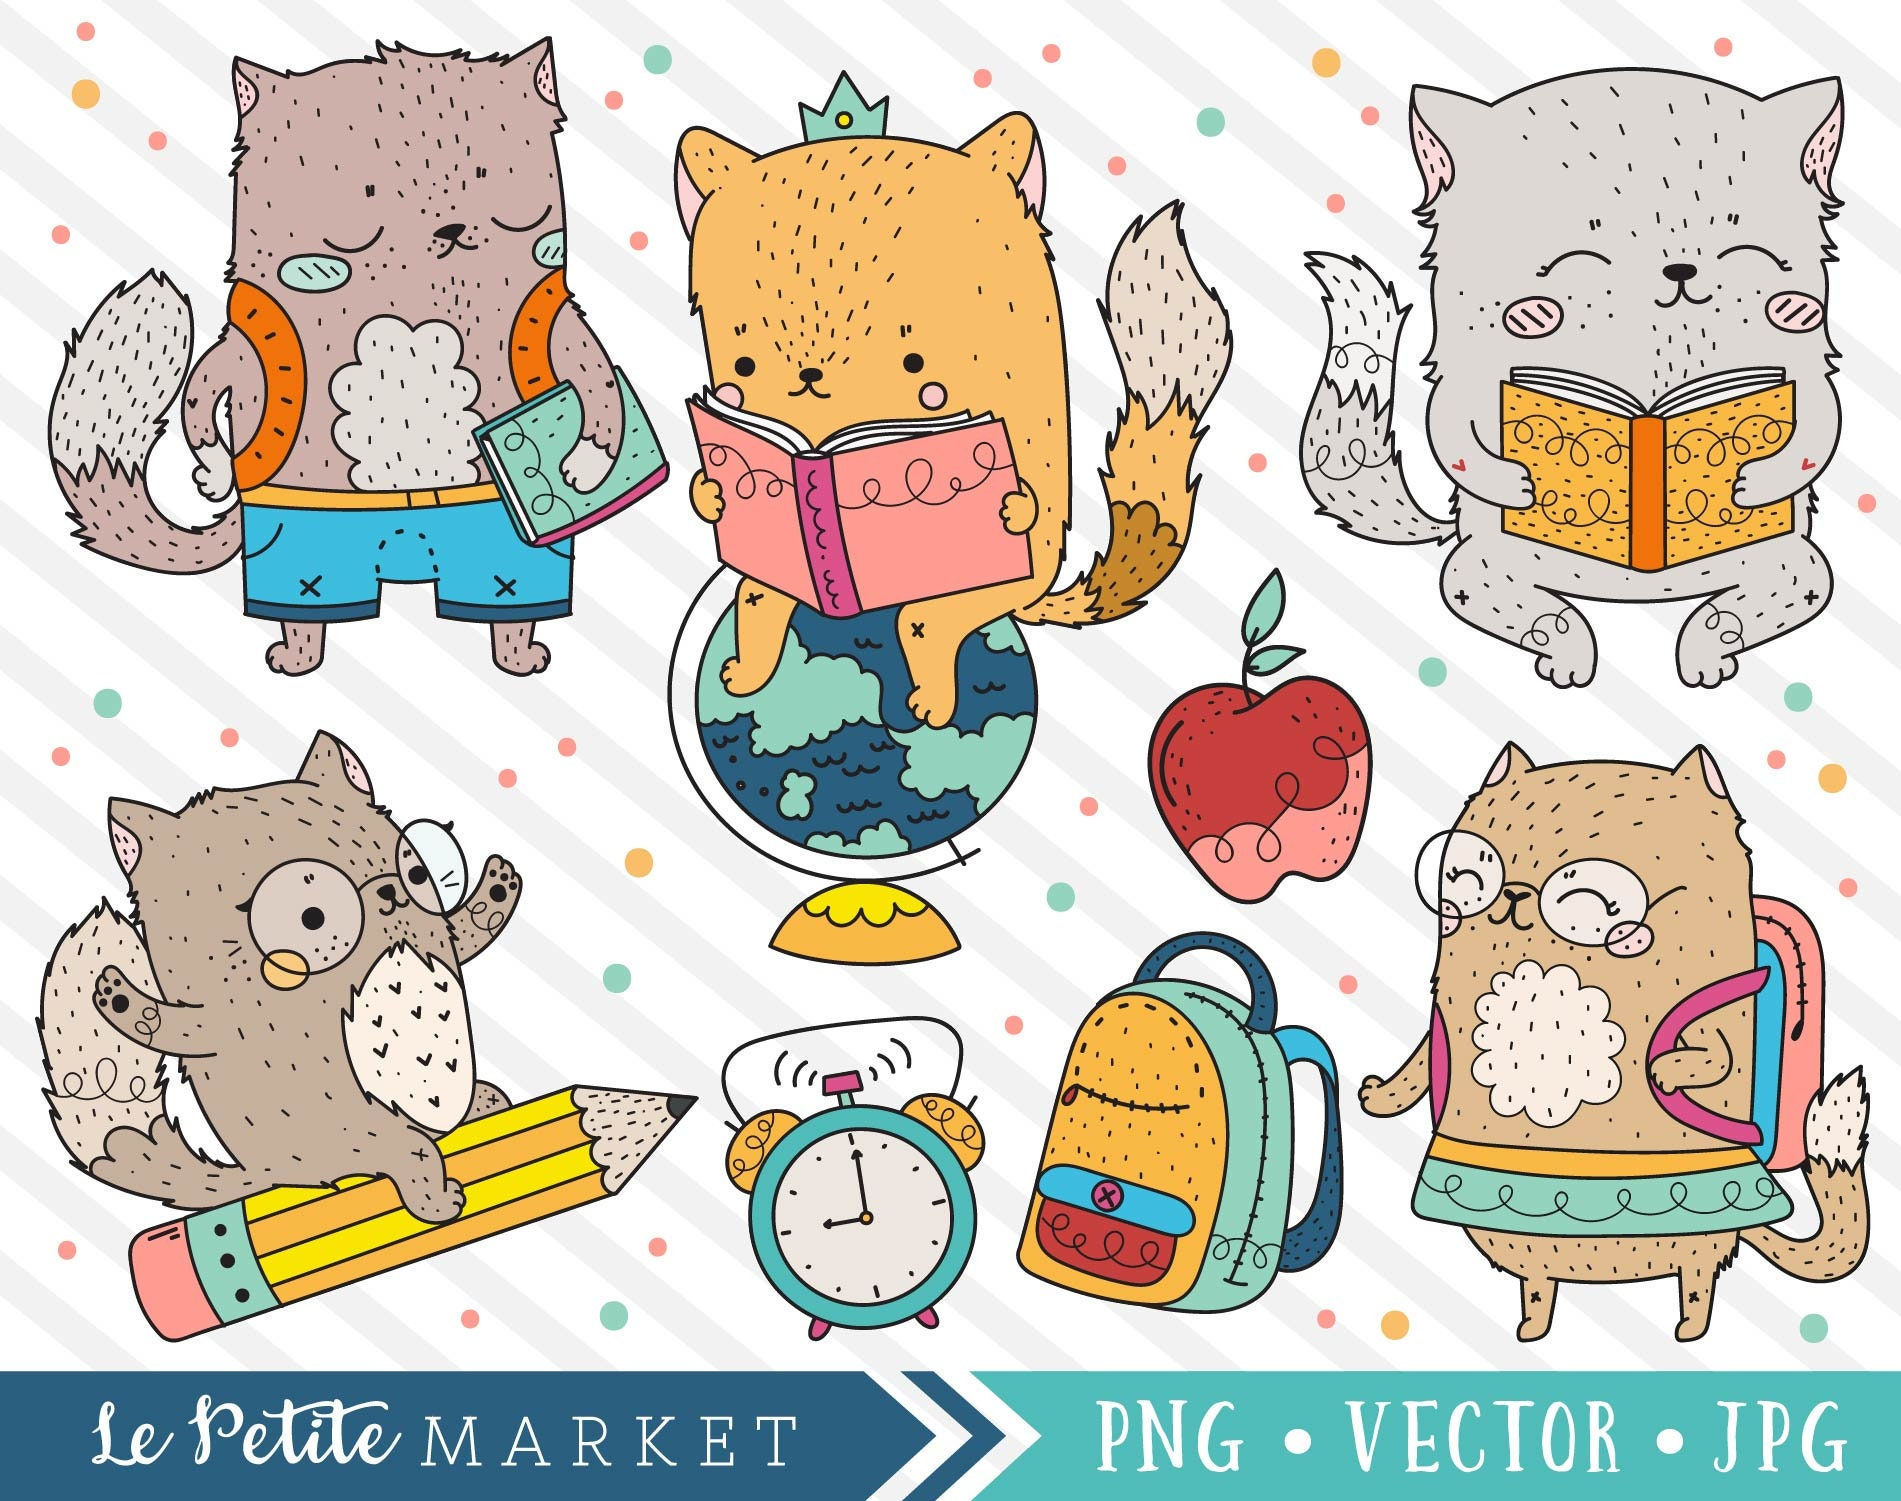 cute school cat clipart images cat school clipart cute | etsy